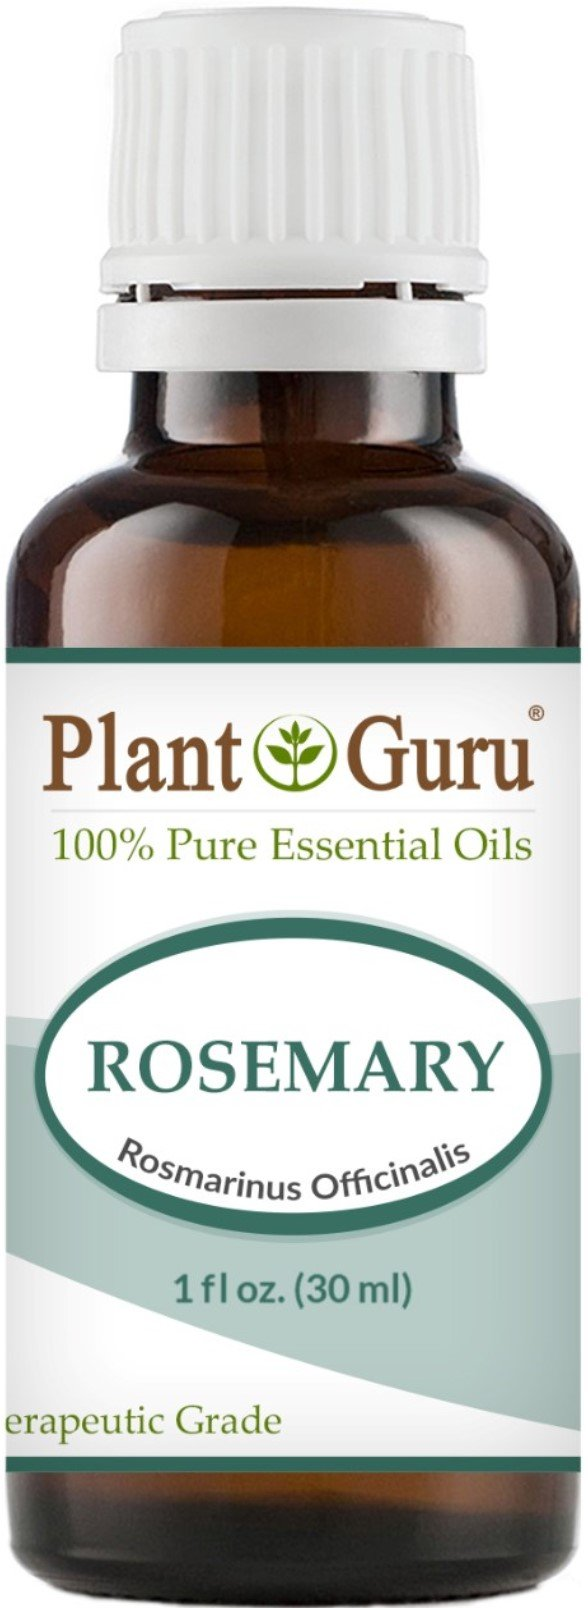 Rosemary Essential Oil 30 ml.(1 oz,) 100% Pure Undiluted Therapeutic Grade For Aromatherapy Diffuser, Stimulates Hair Growth and Dandruff Control.